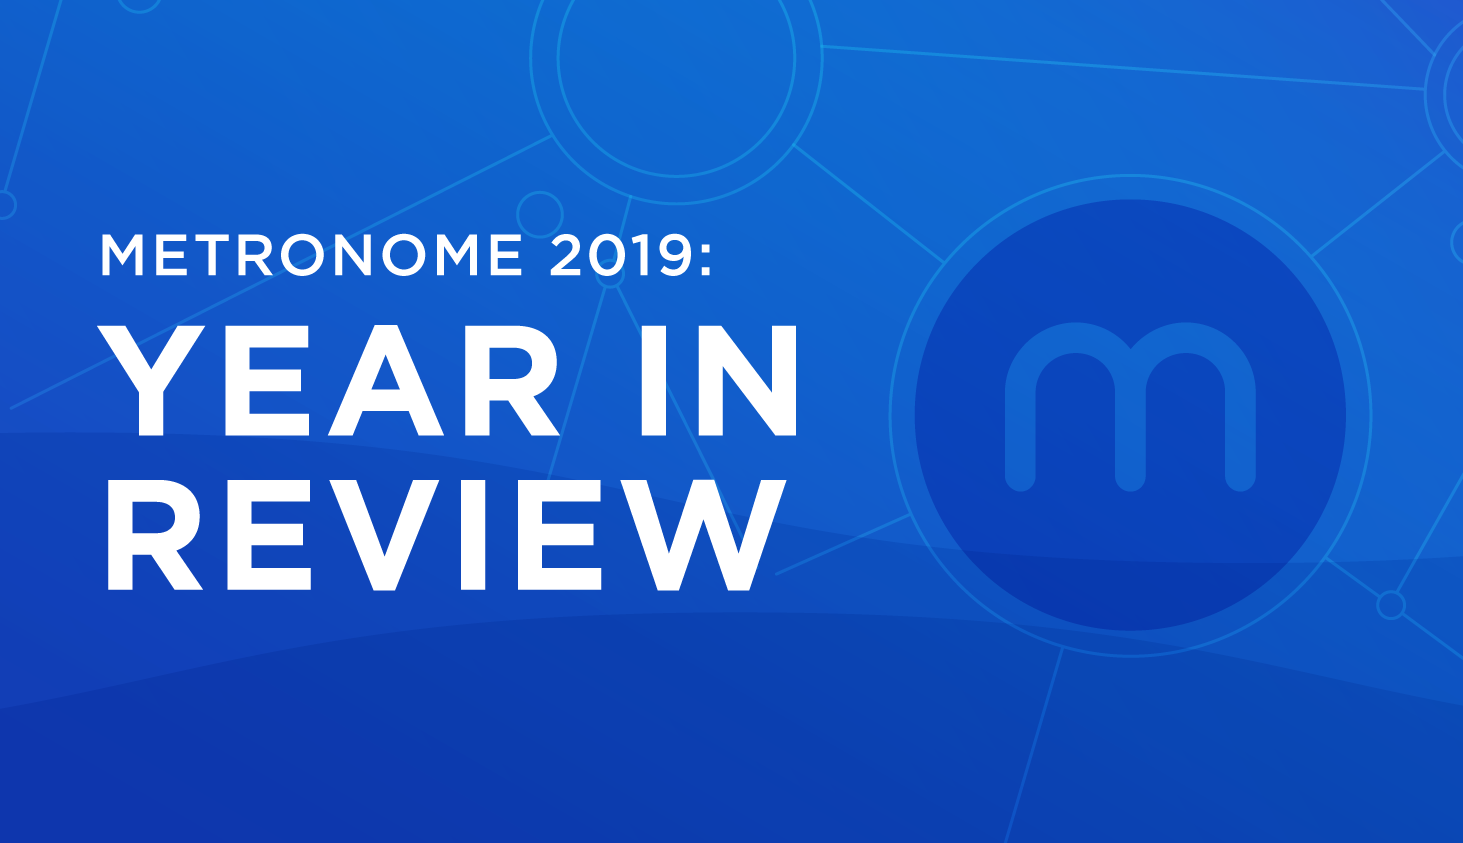 Metronome 2019 Year in Review